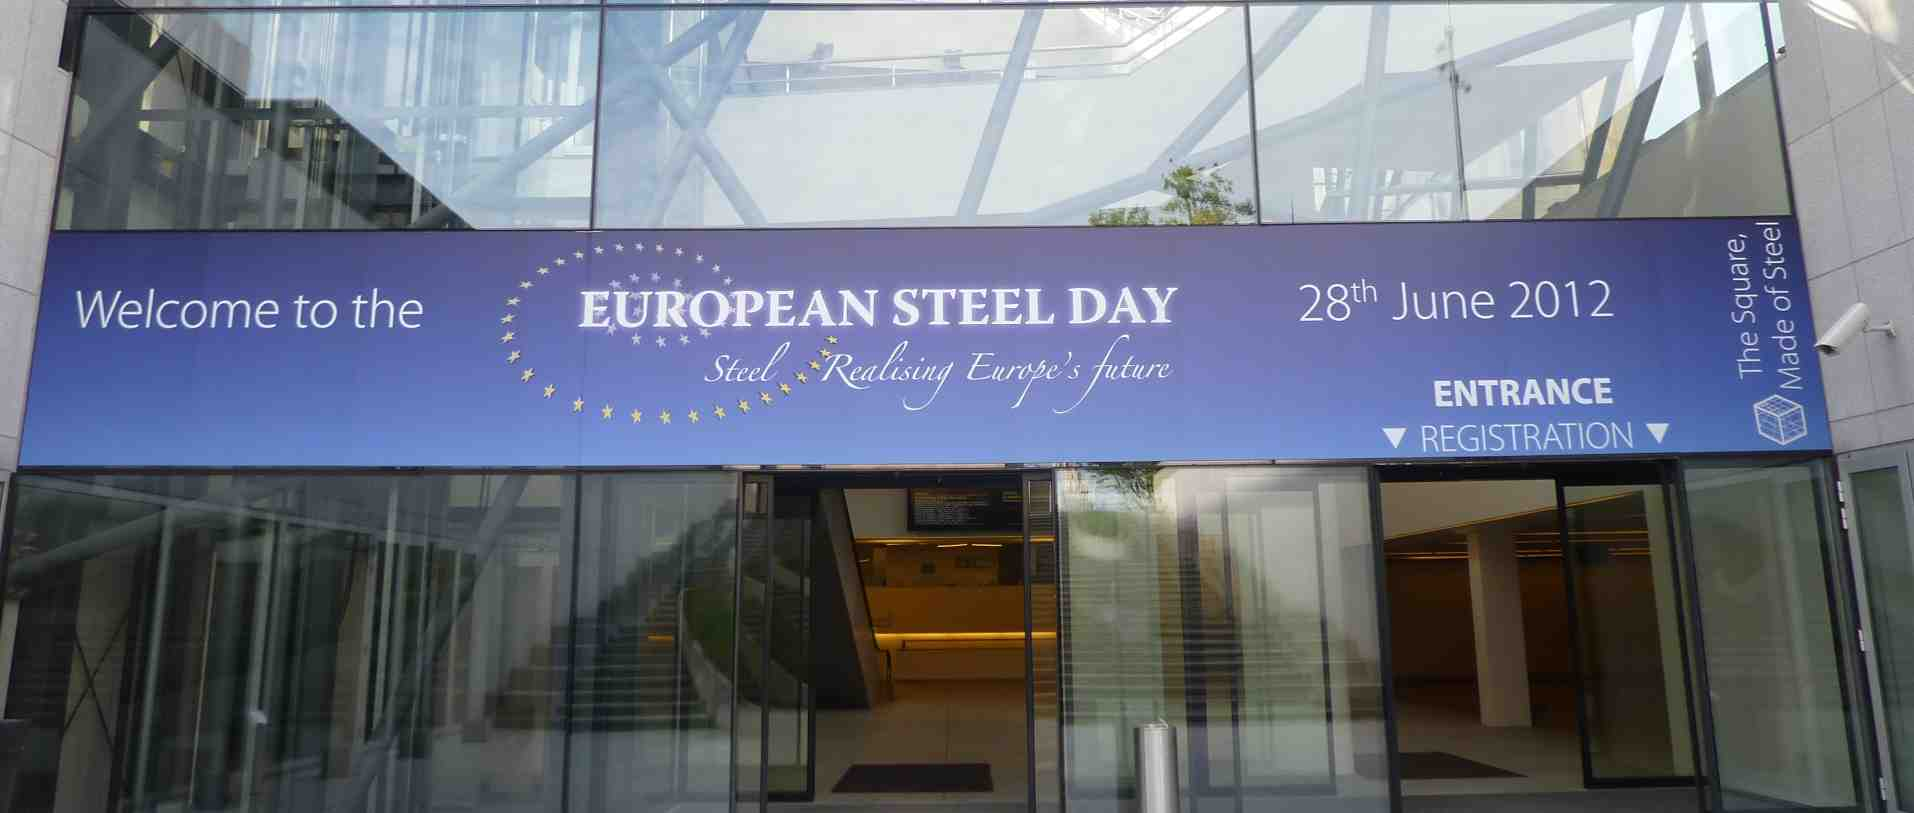 BANDEAU_EUROFER_STEEL_DAY_2012